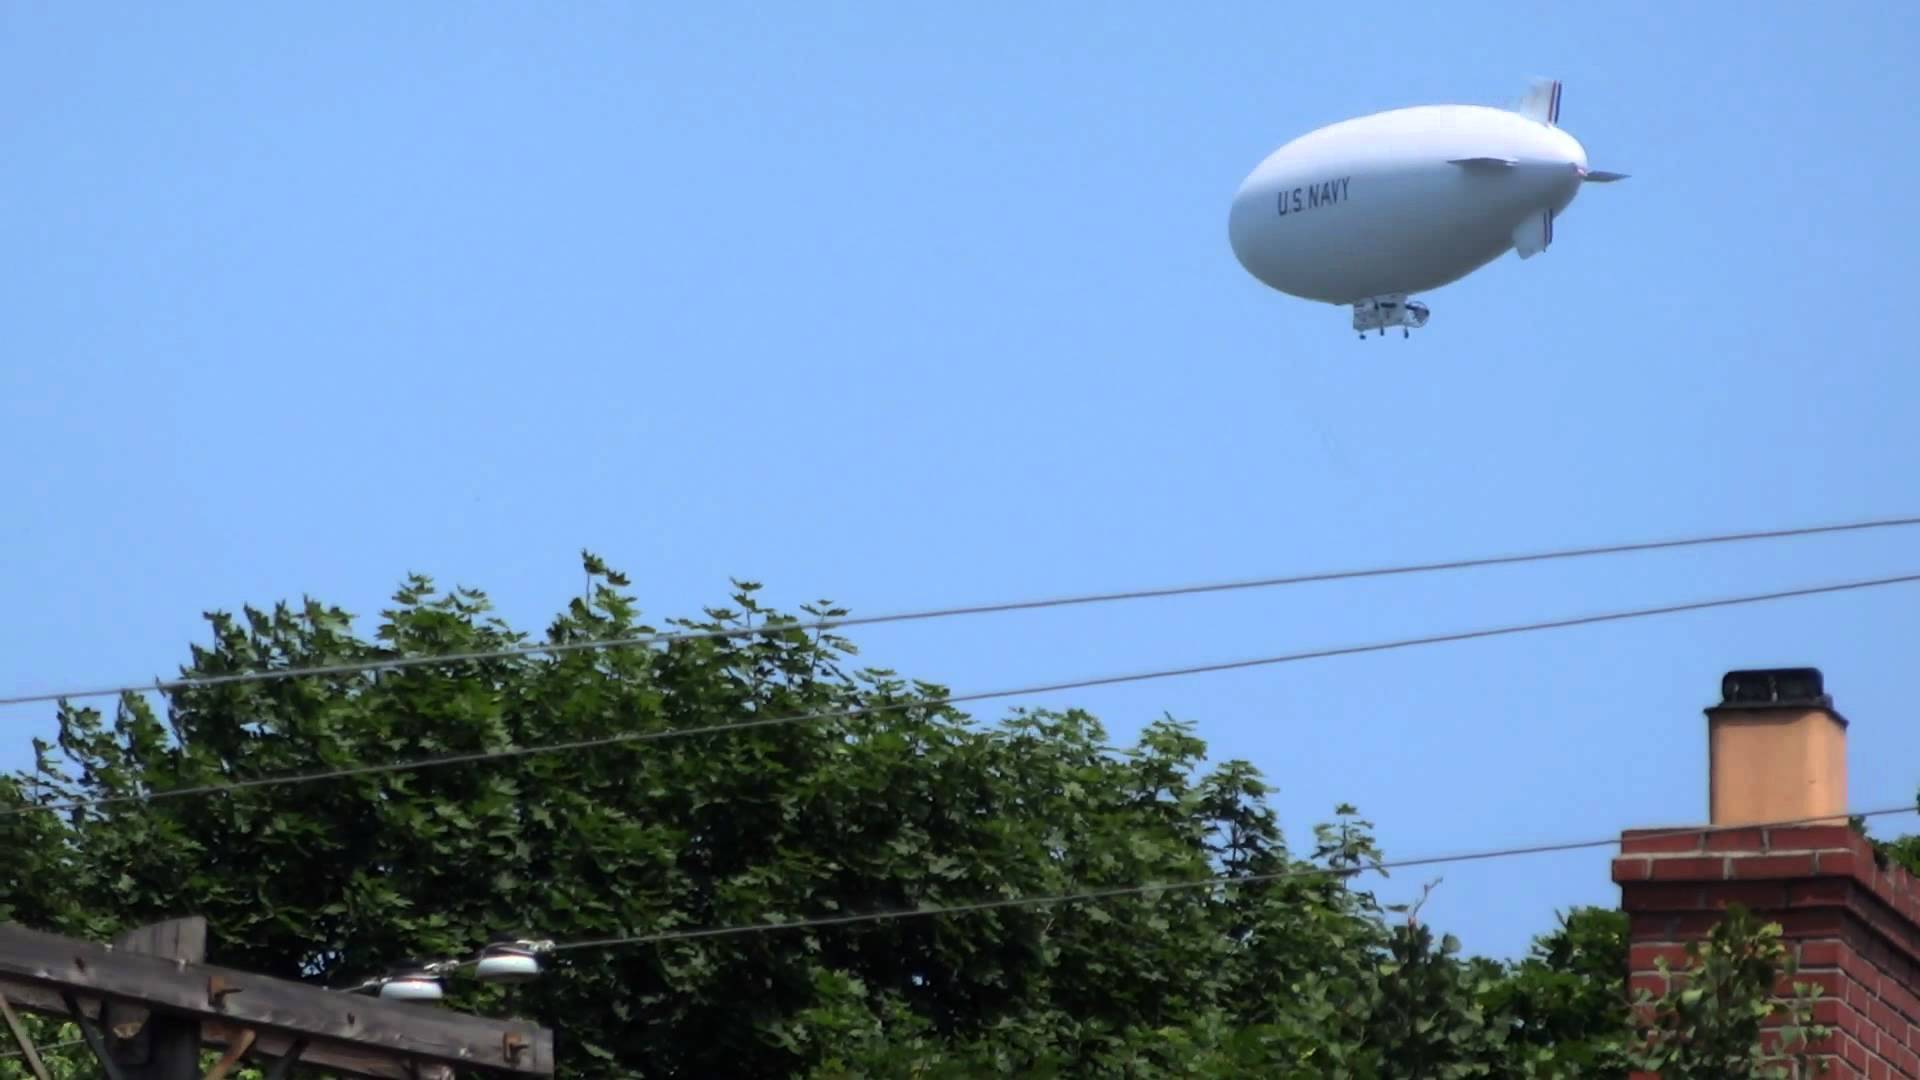 Navy Blimp Filmed Hovering Over New Jersey Towns